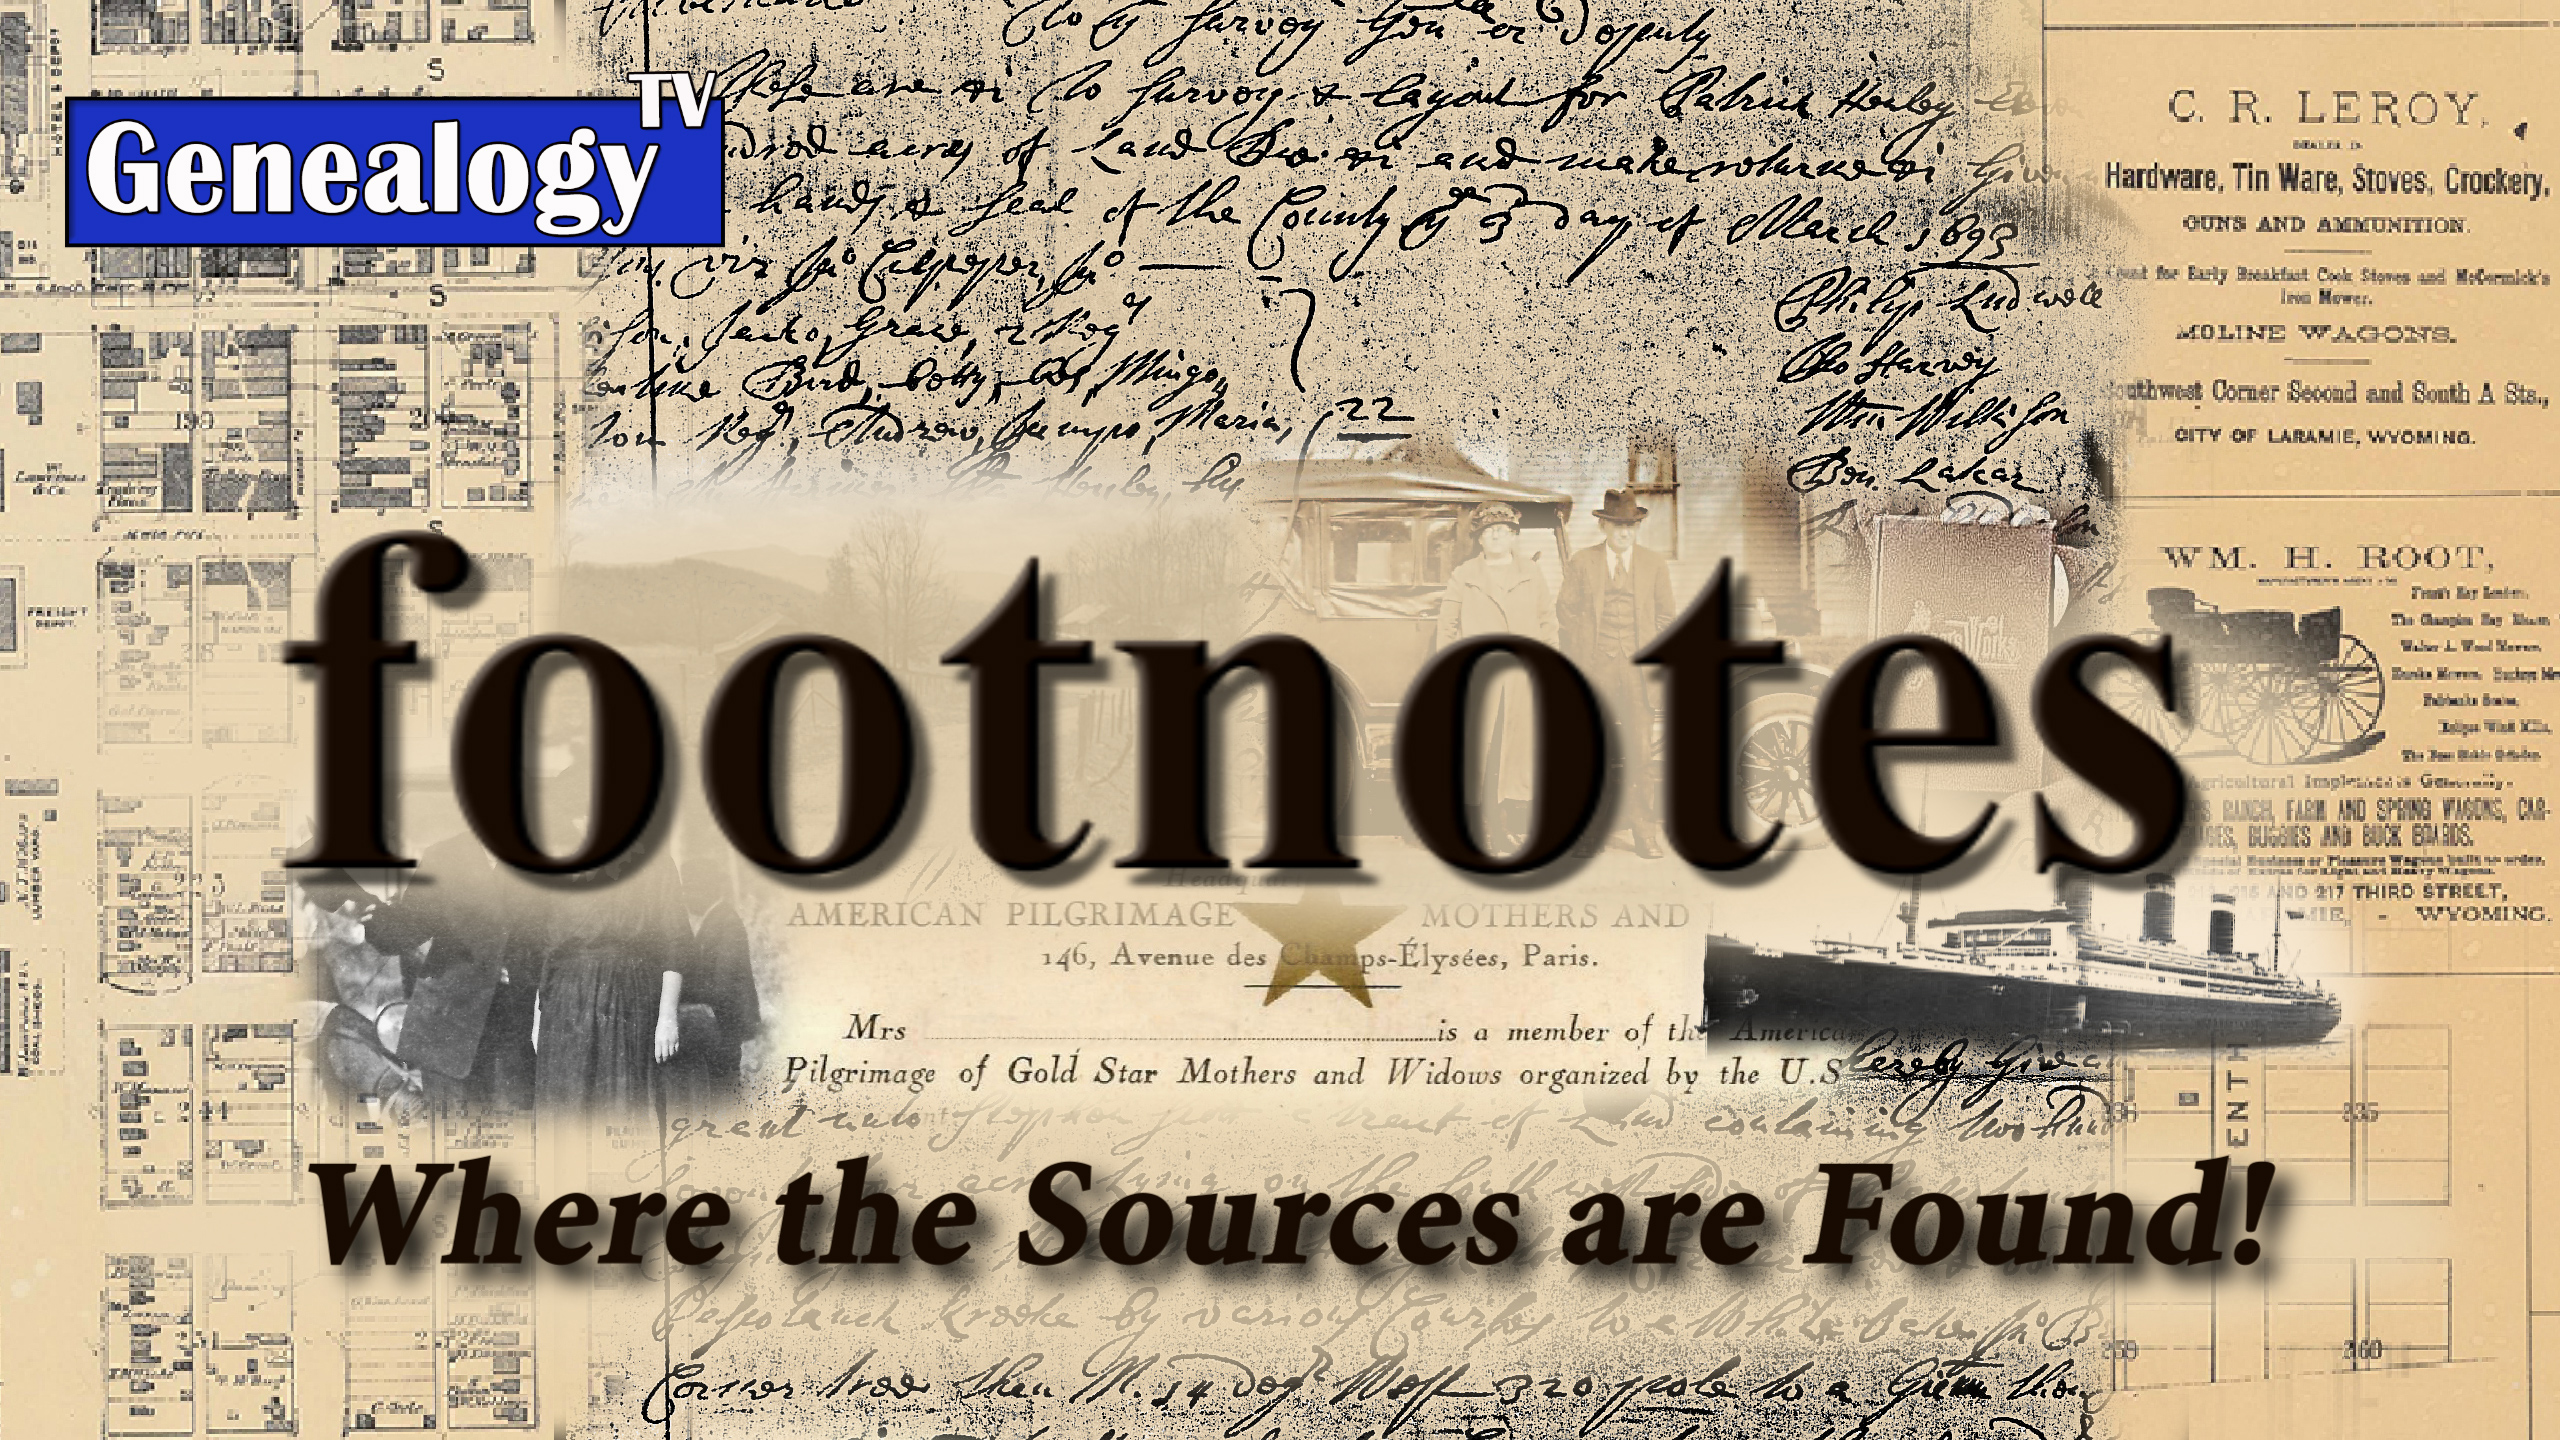 footnotes series on GenealogyTV.org